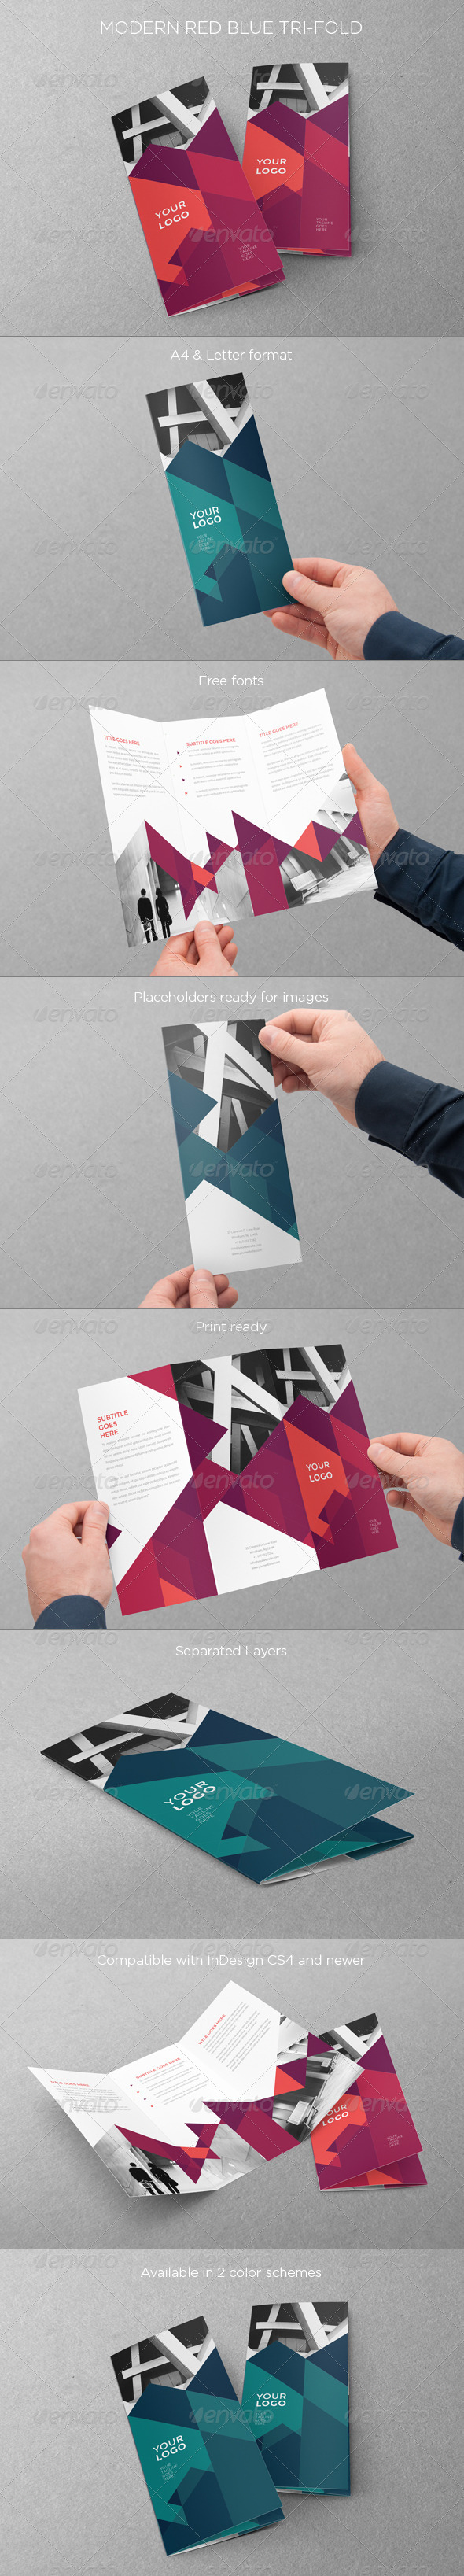 GraphicRiver Modern Red Blue Trifold 7886017